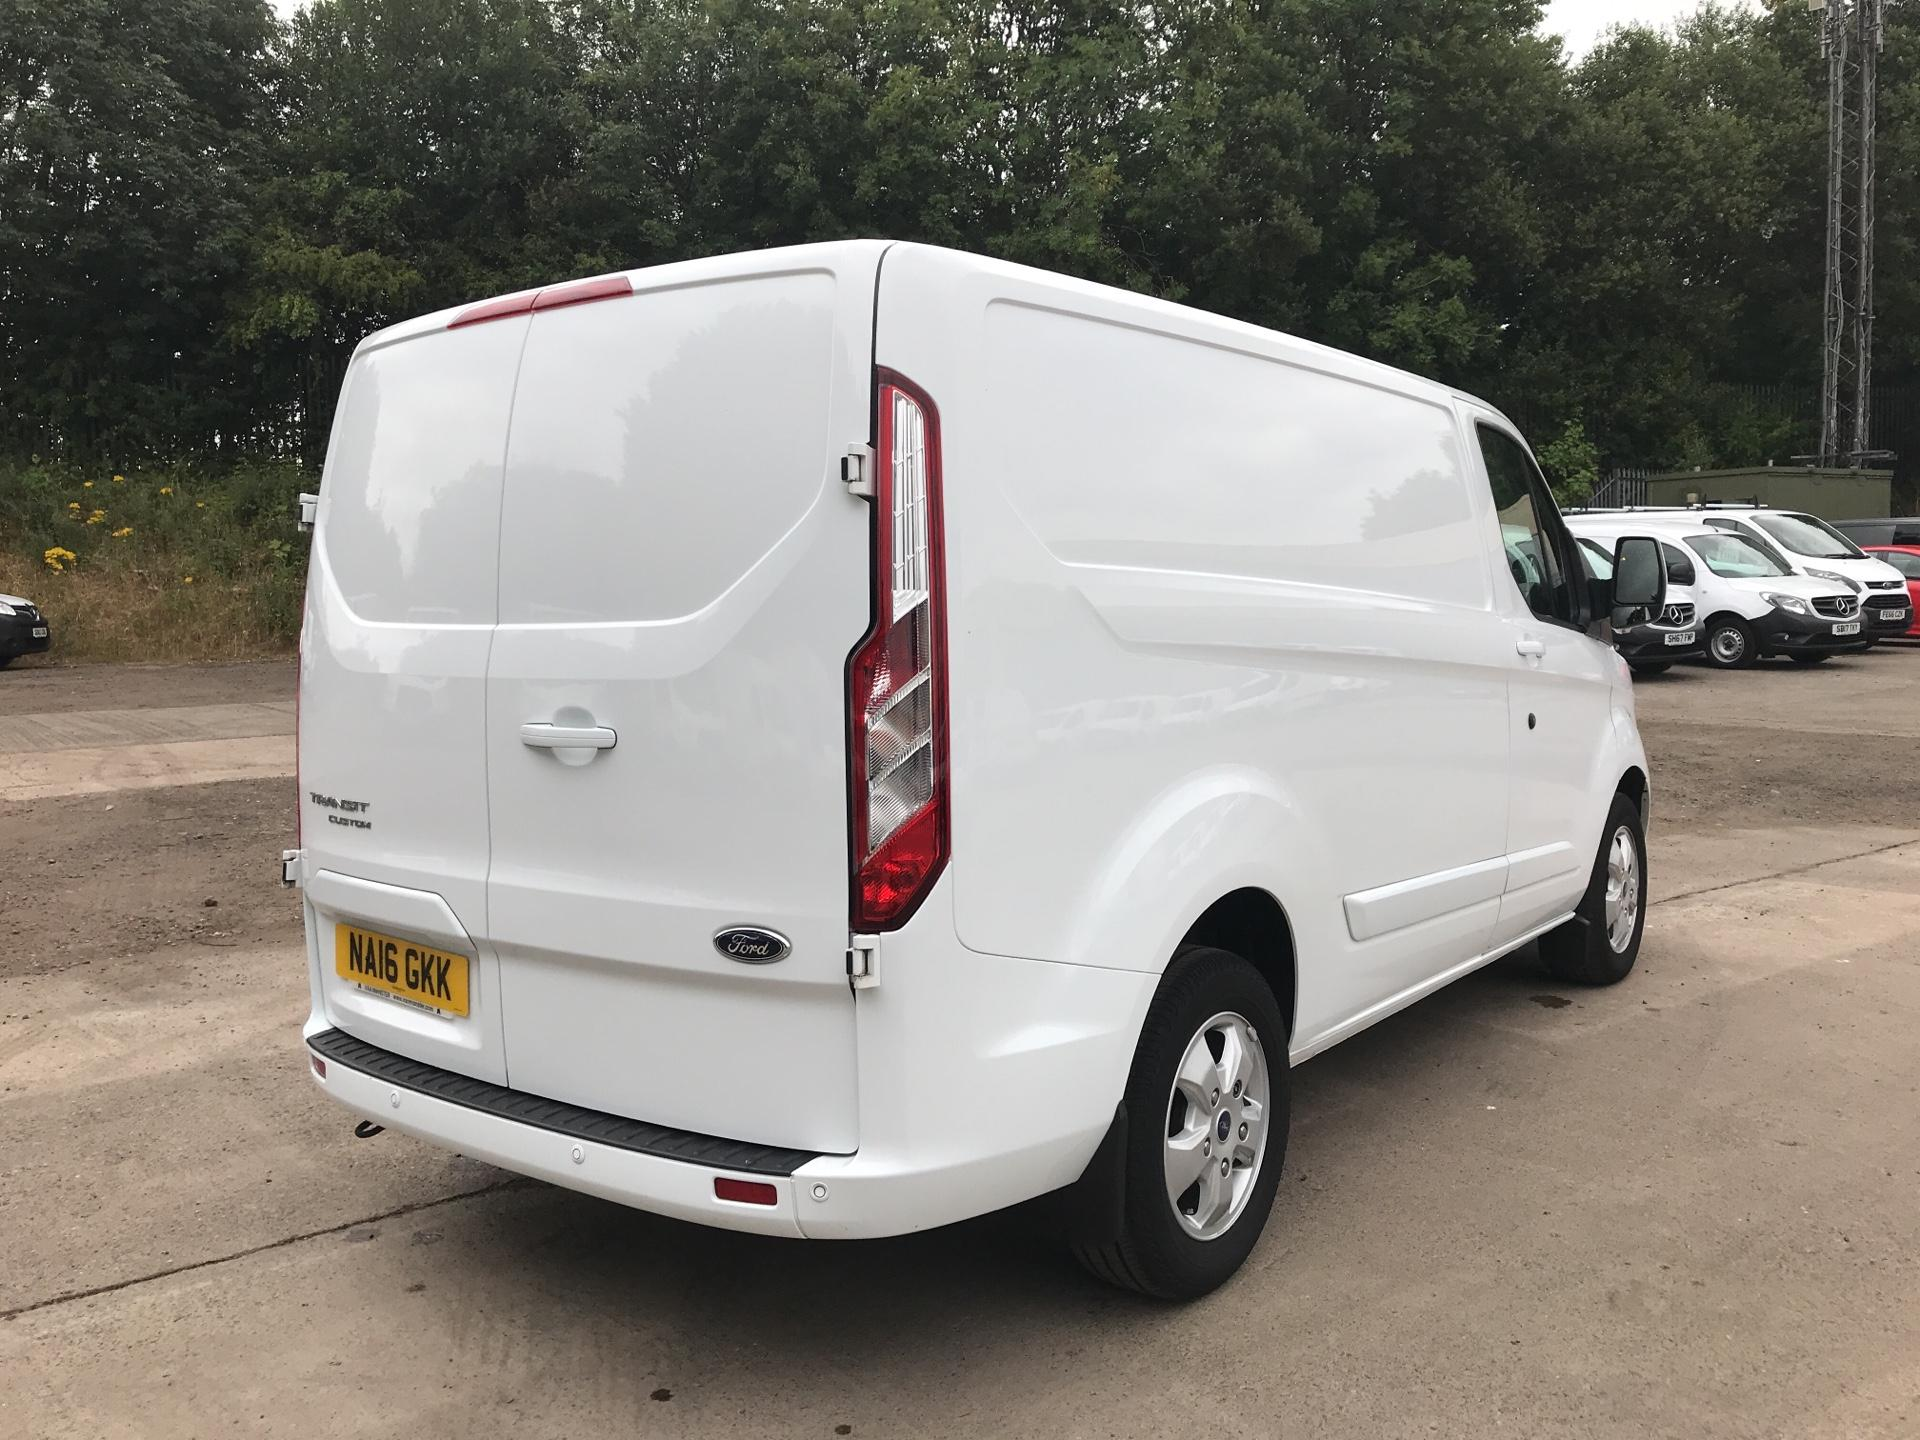 2016 Ford Transit Custom 270 L1 DIESEL FWD 2.2  TDCI 125PS LOW ROOF LIMITED VAN EURO 5 (NA16GKK) Image 3